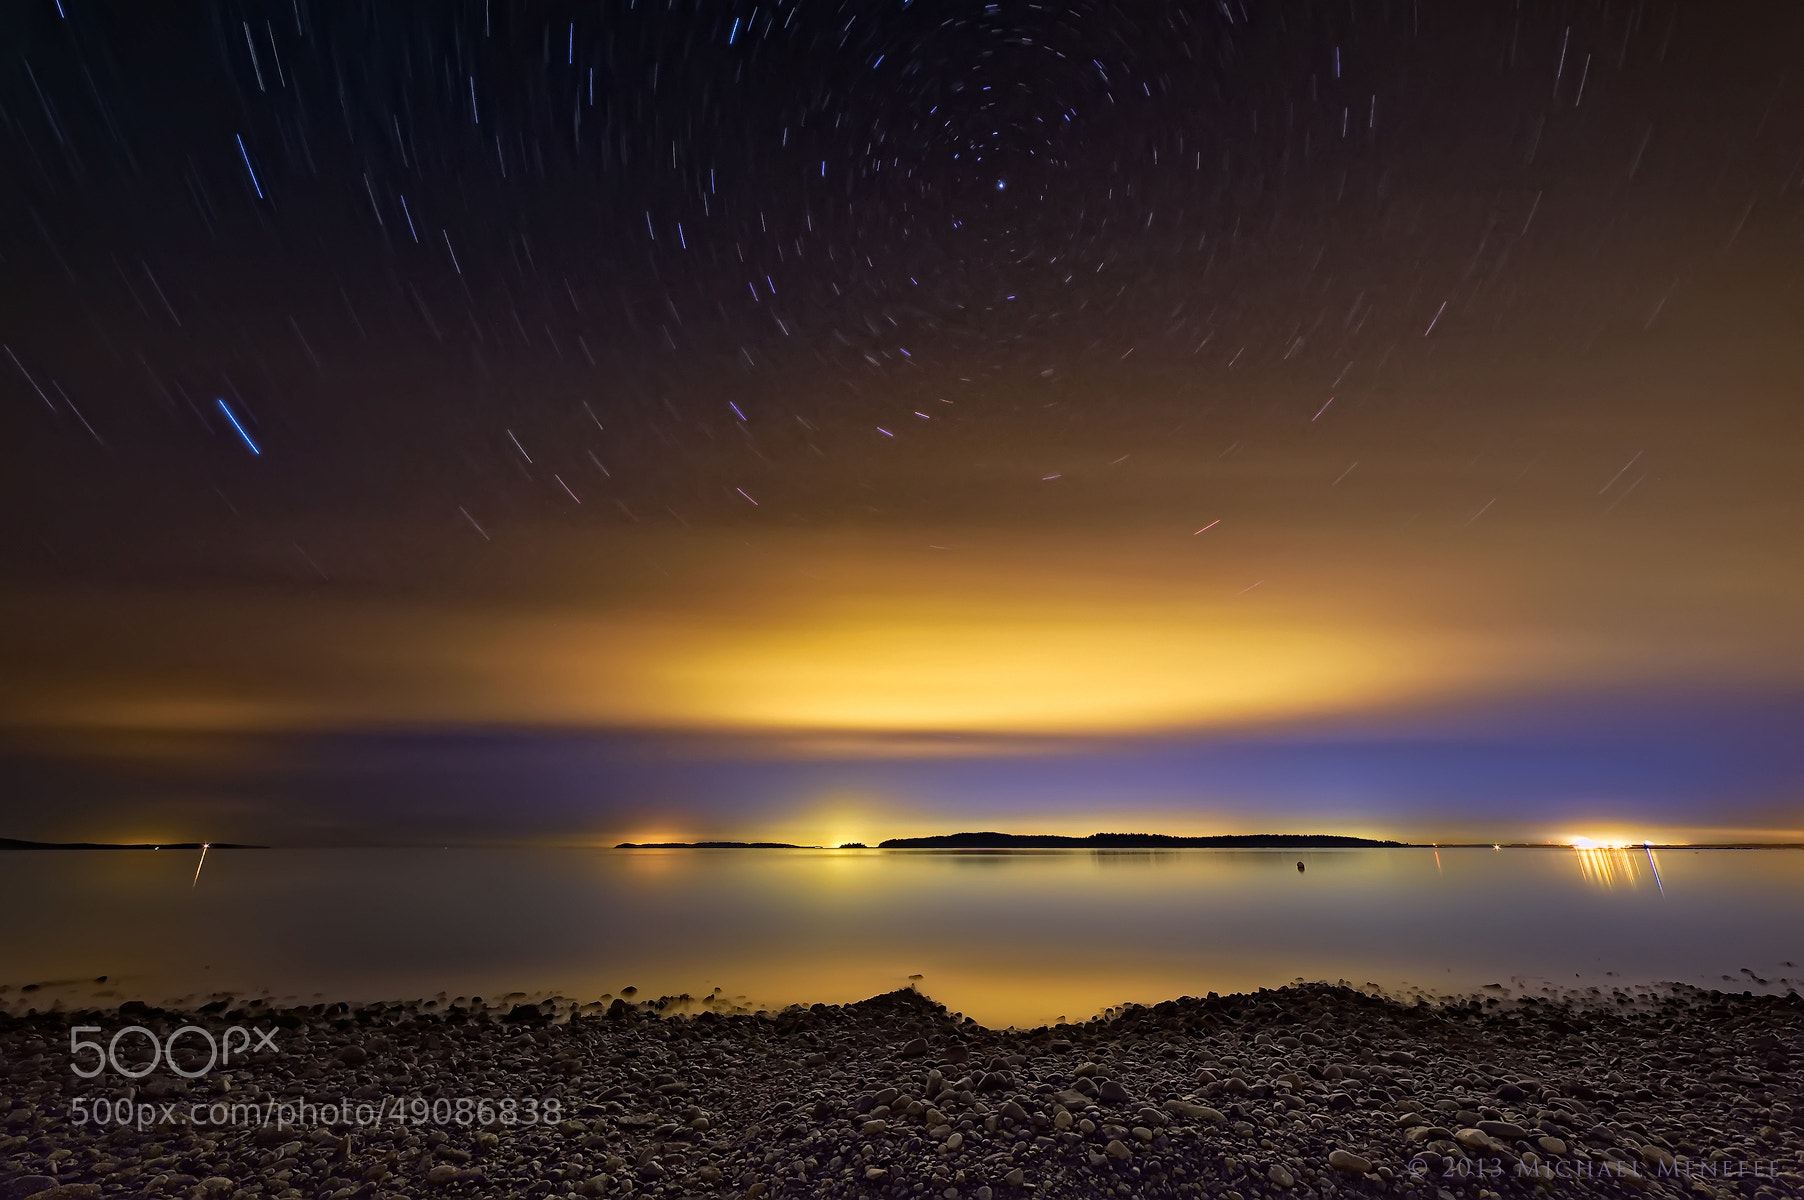 Photograph Celestial Spinning Above the San Juan Islands by Michael Menefee on 500px